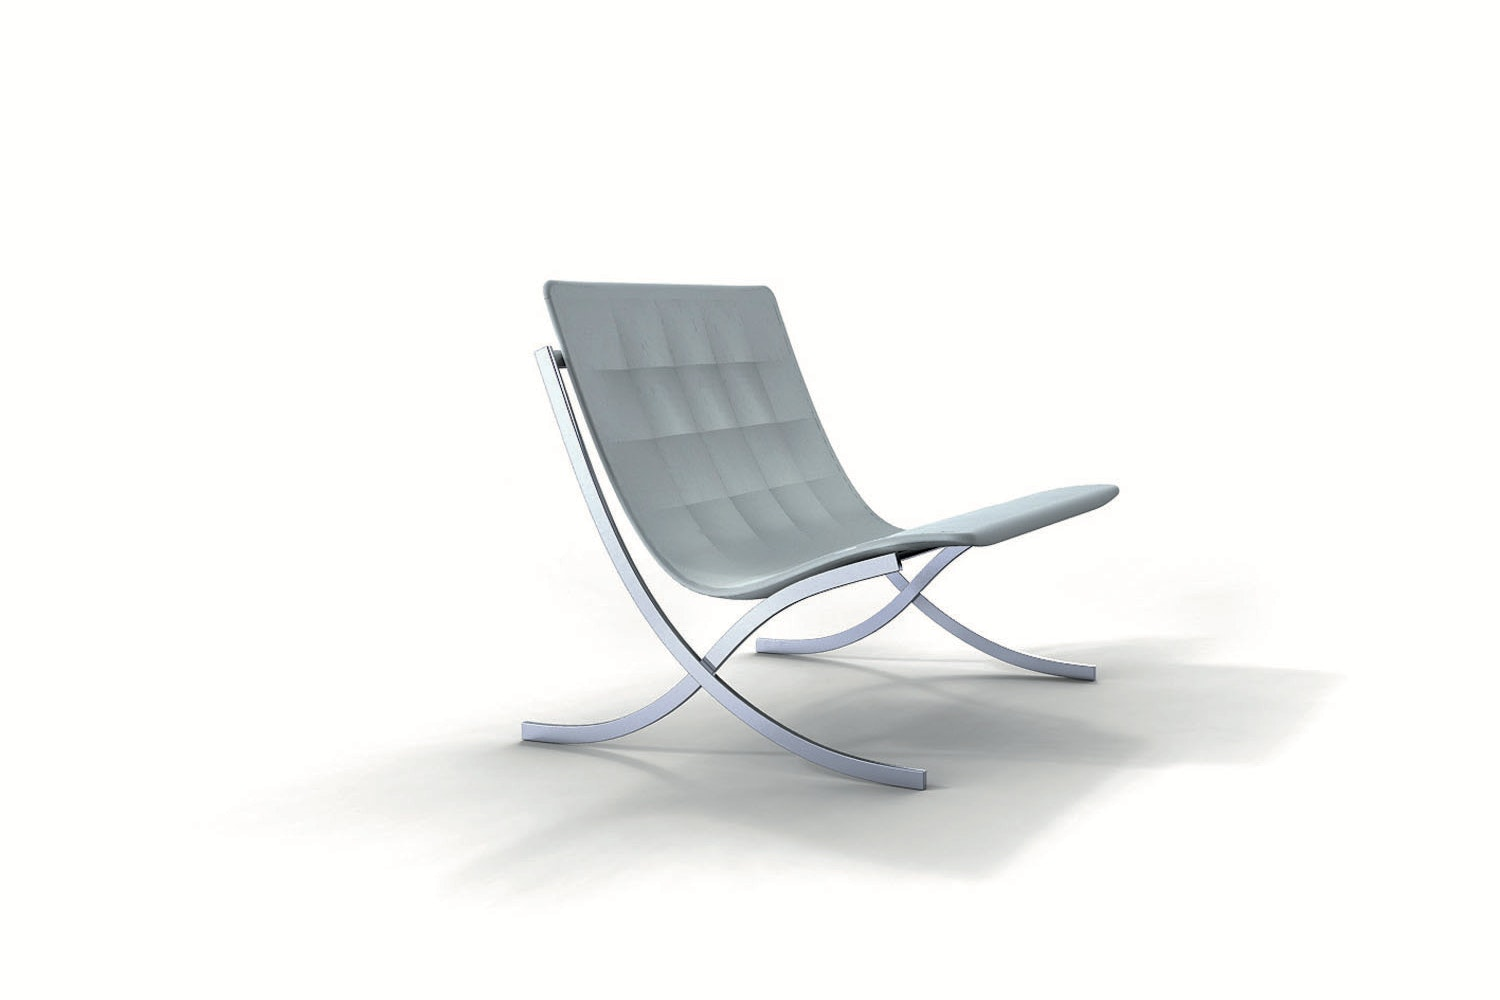 Barceloneta Armchair by Deepdesign for Serralunga